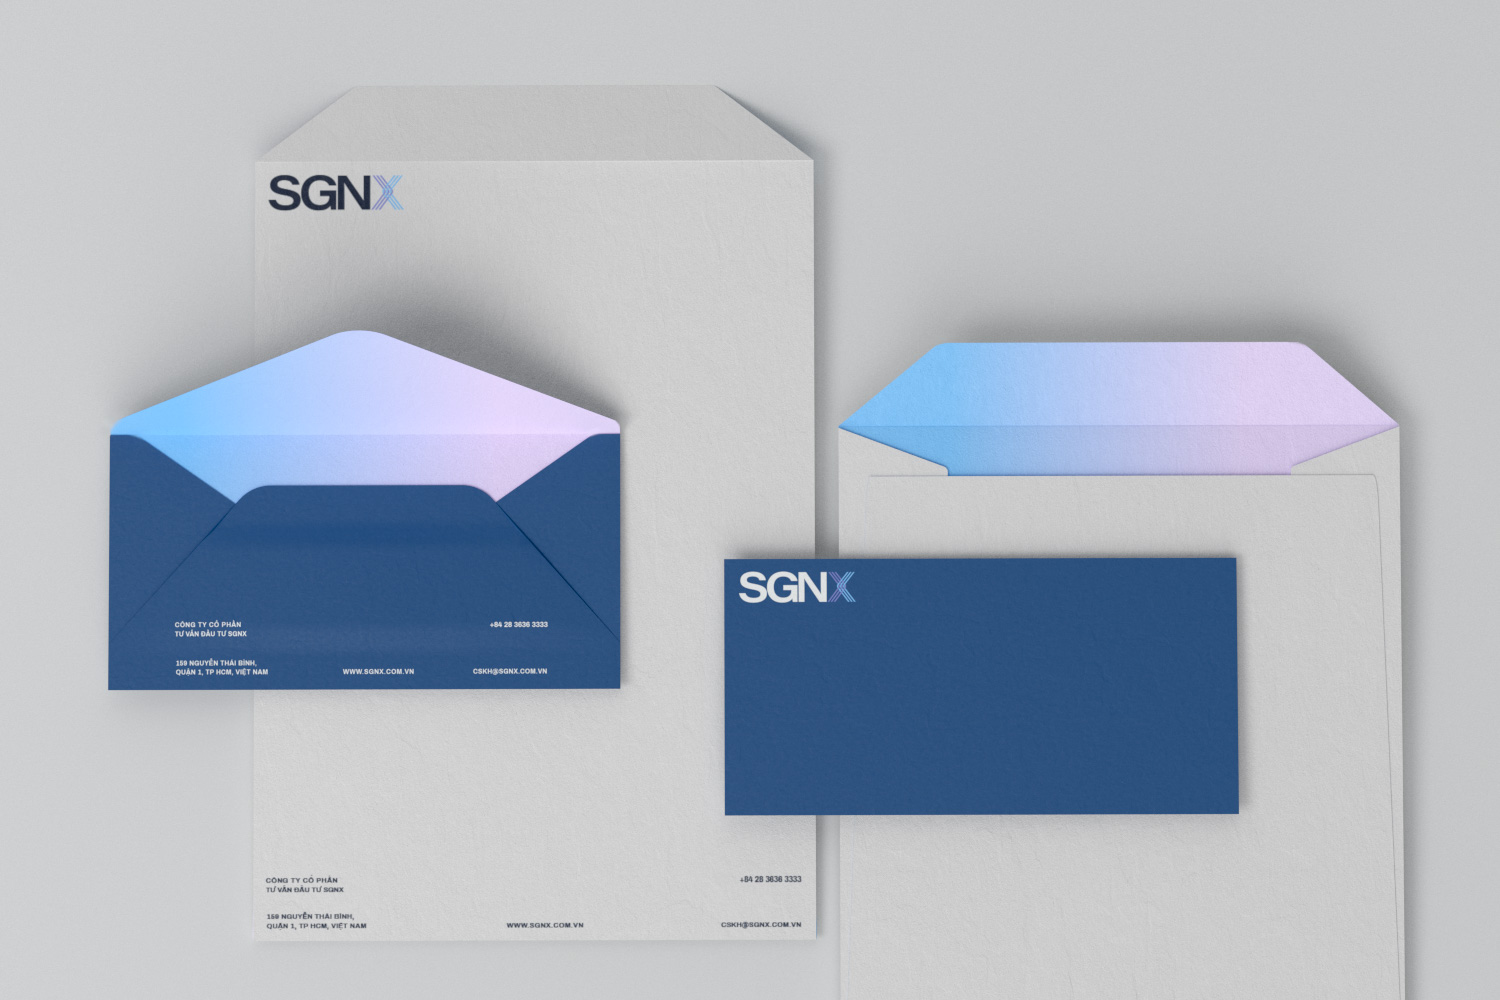 SGNX envelope set